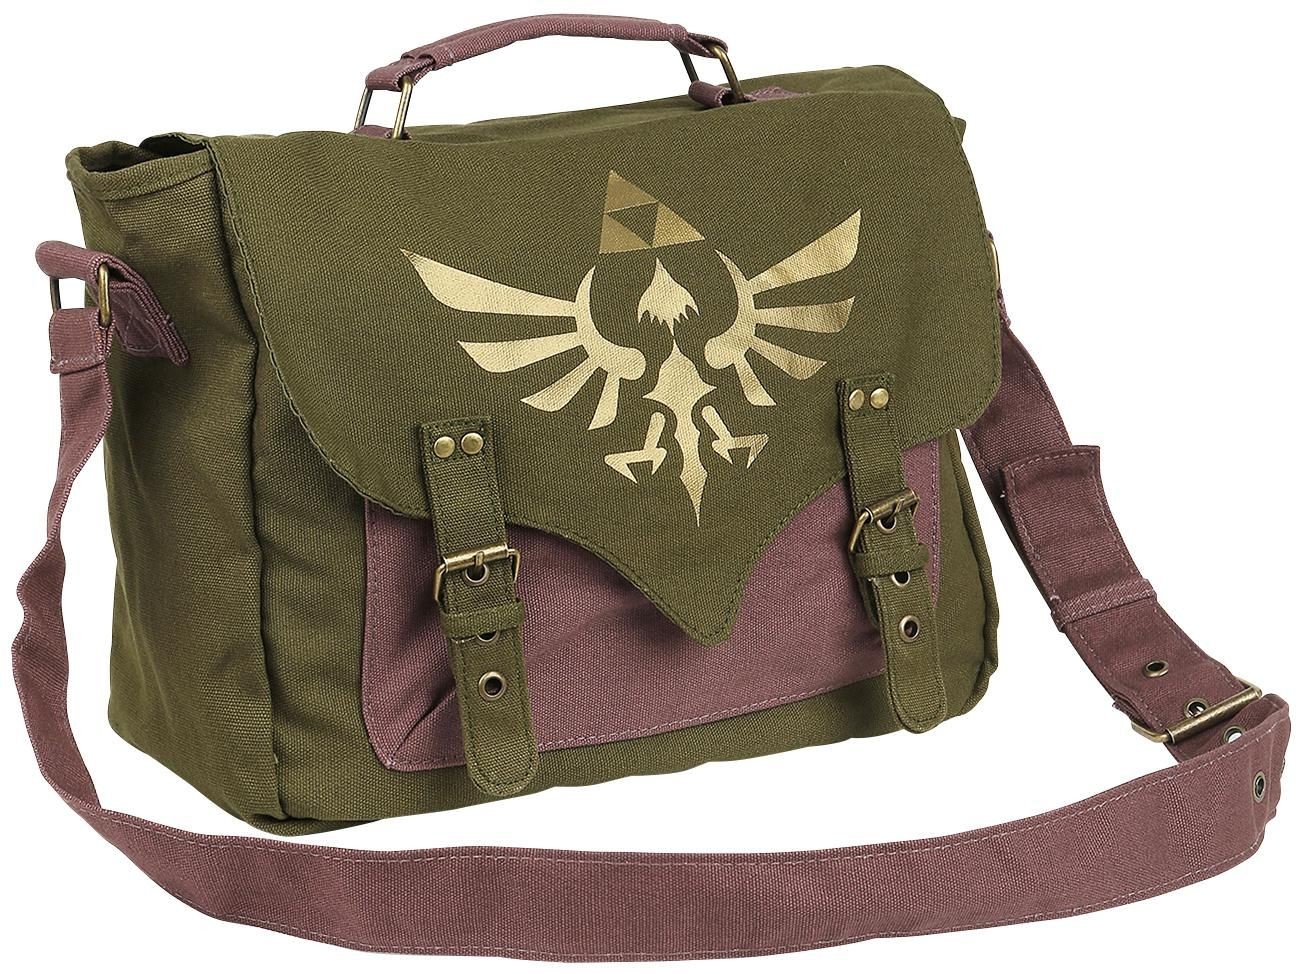 633b2873a56 Golden Logo Olive Green Satchel The Legend Of Zelda, Zelda Backpack,  Backpack Purse,